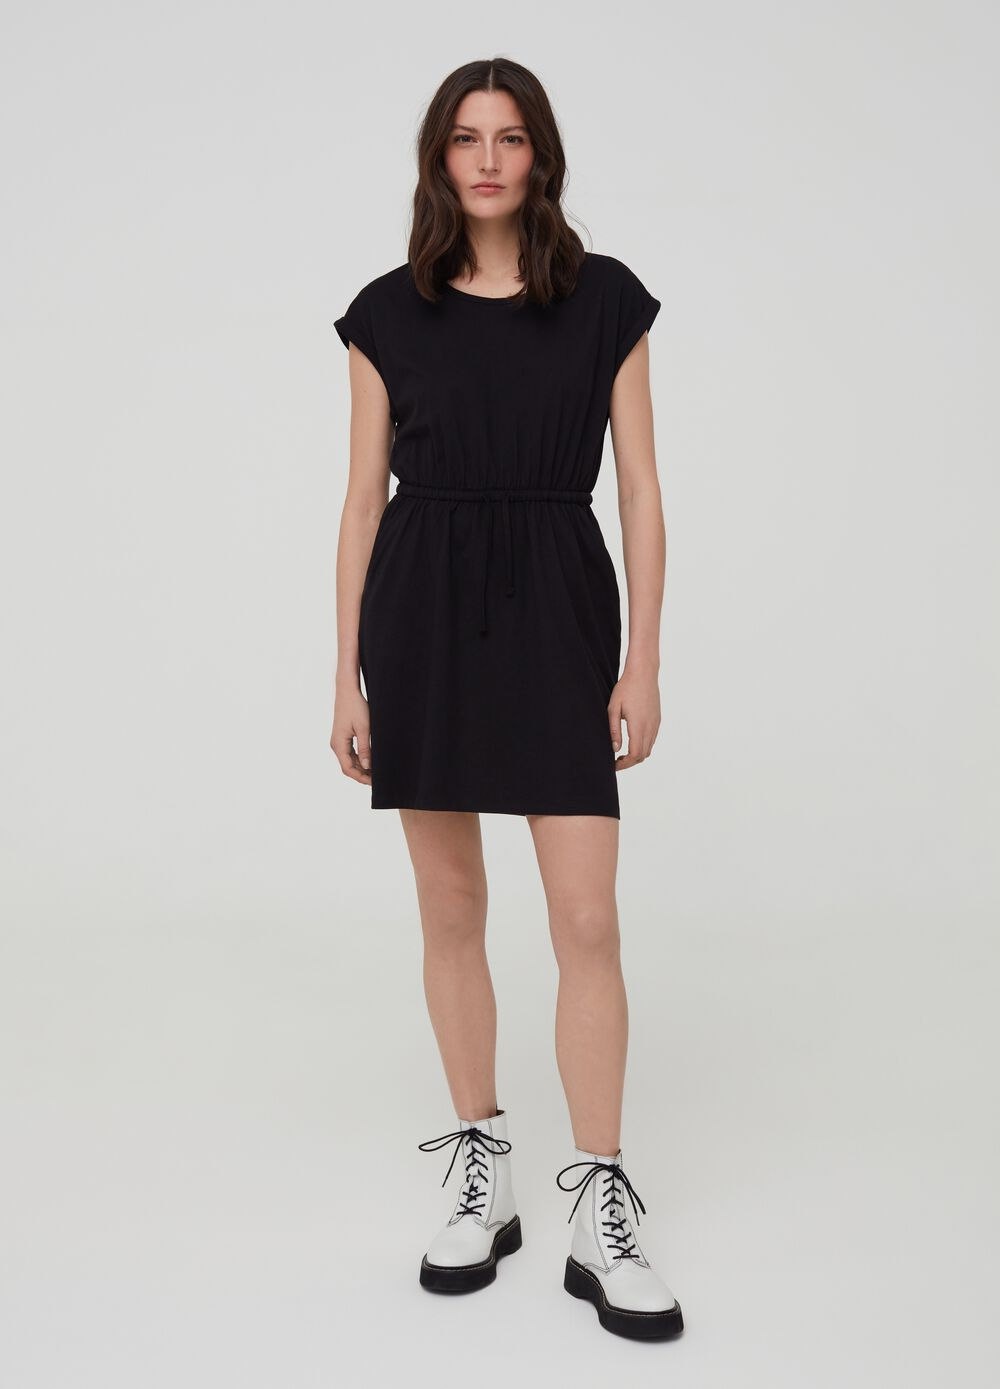 100% cotton dress with pockets